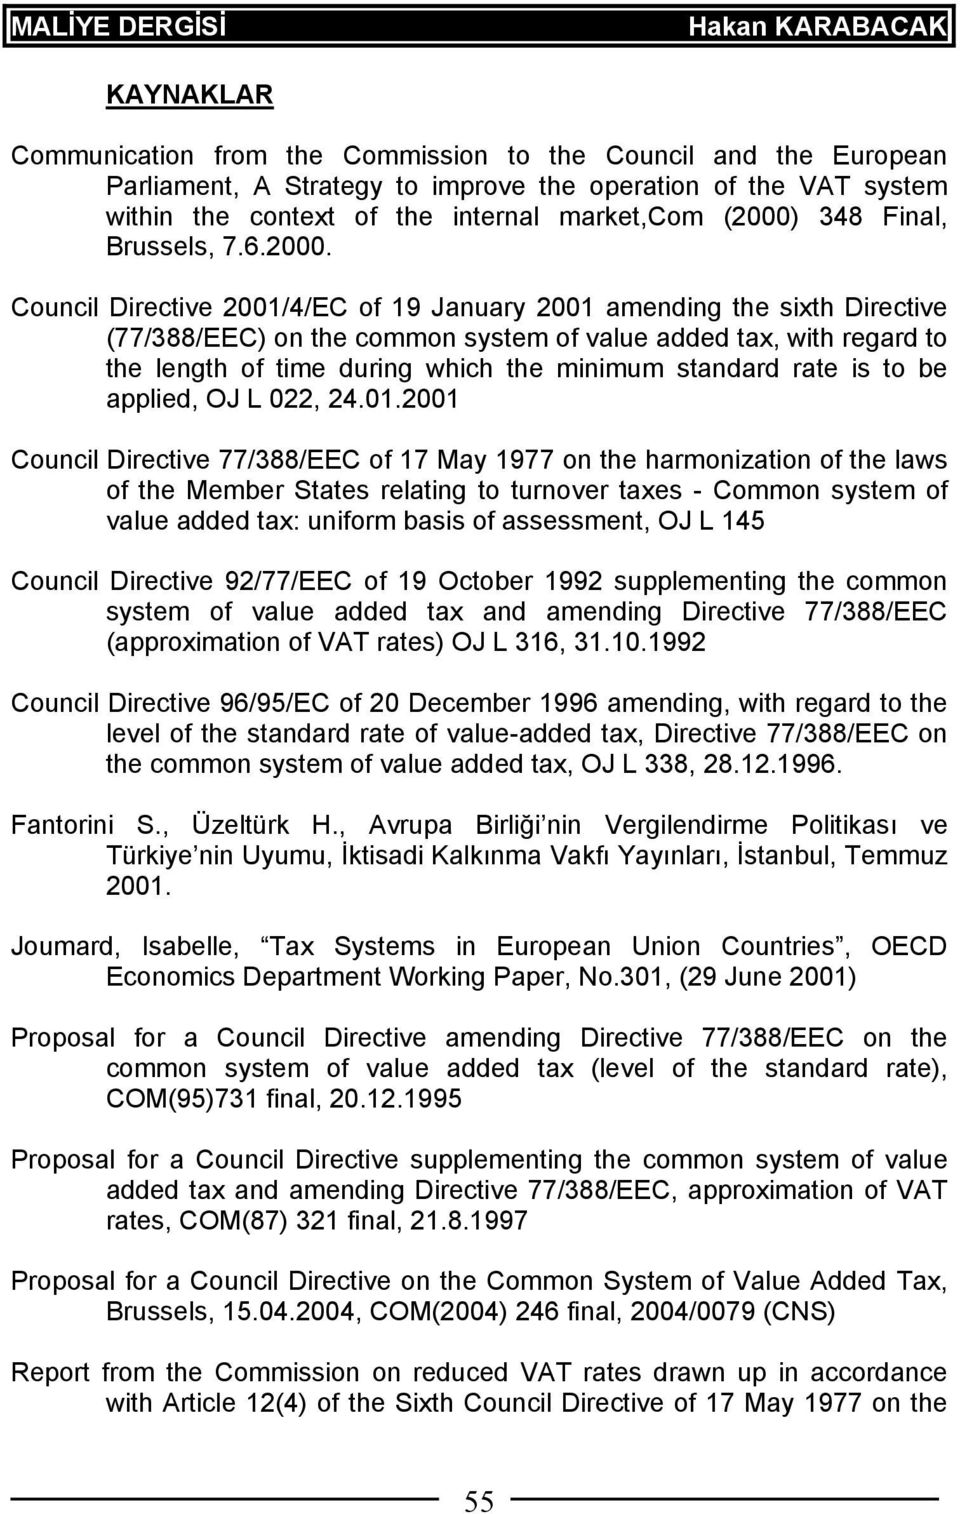 Council Directive 2001/4/EC of 19 January 2001 amending the sixth Directive (77/388/EEC) on the common system of value added tax, with regard to the length of time during which the minimum standard